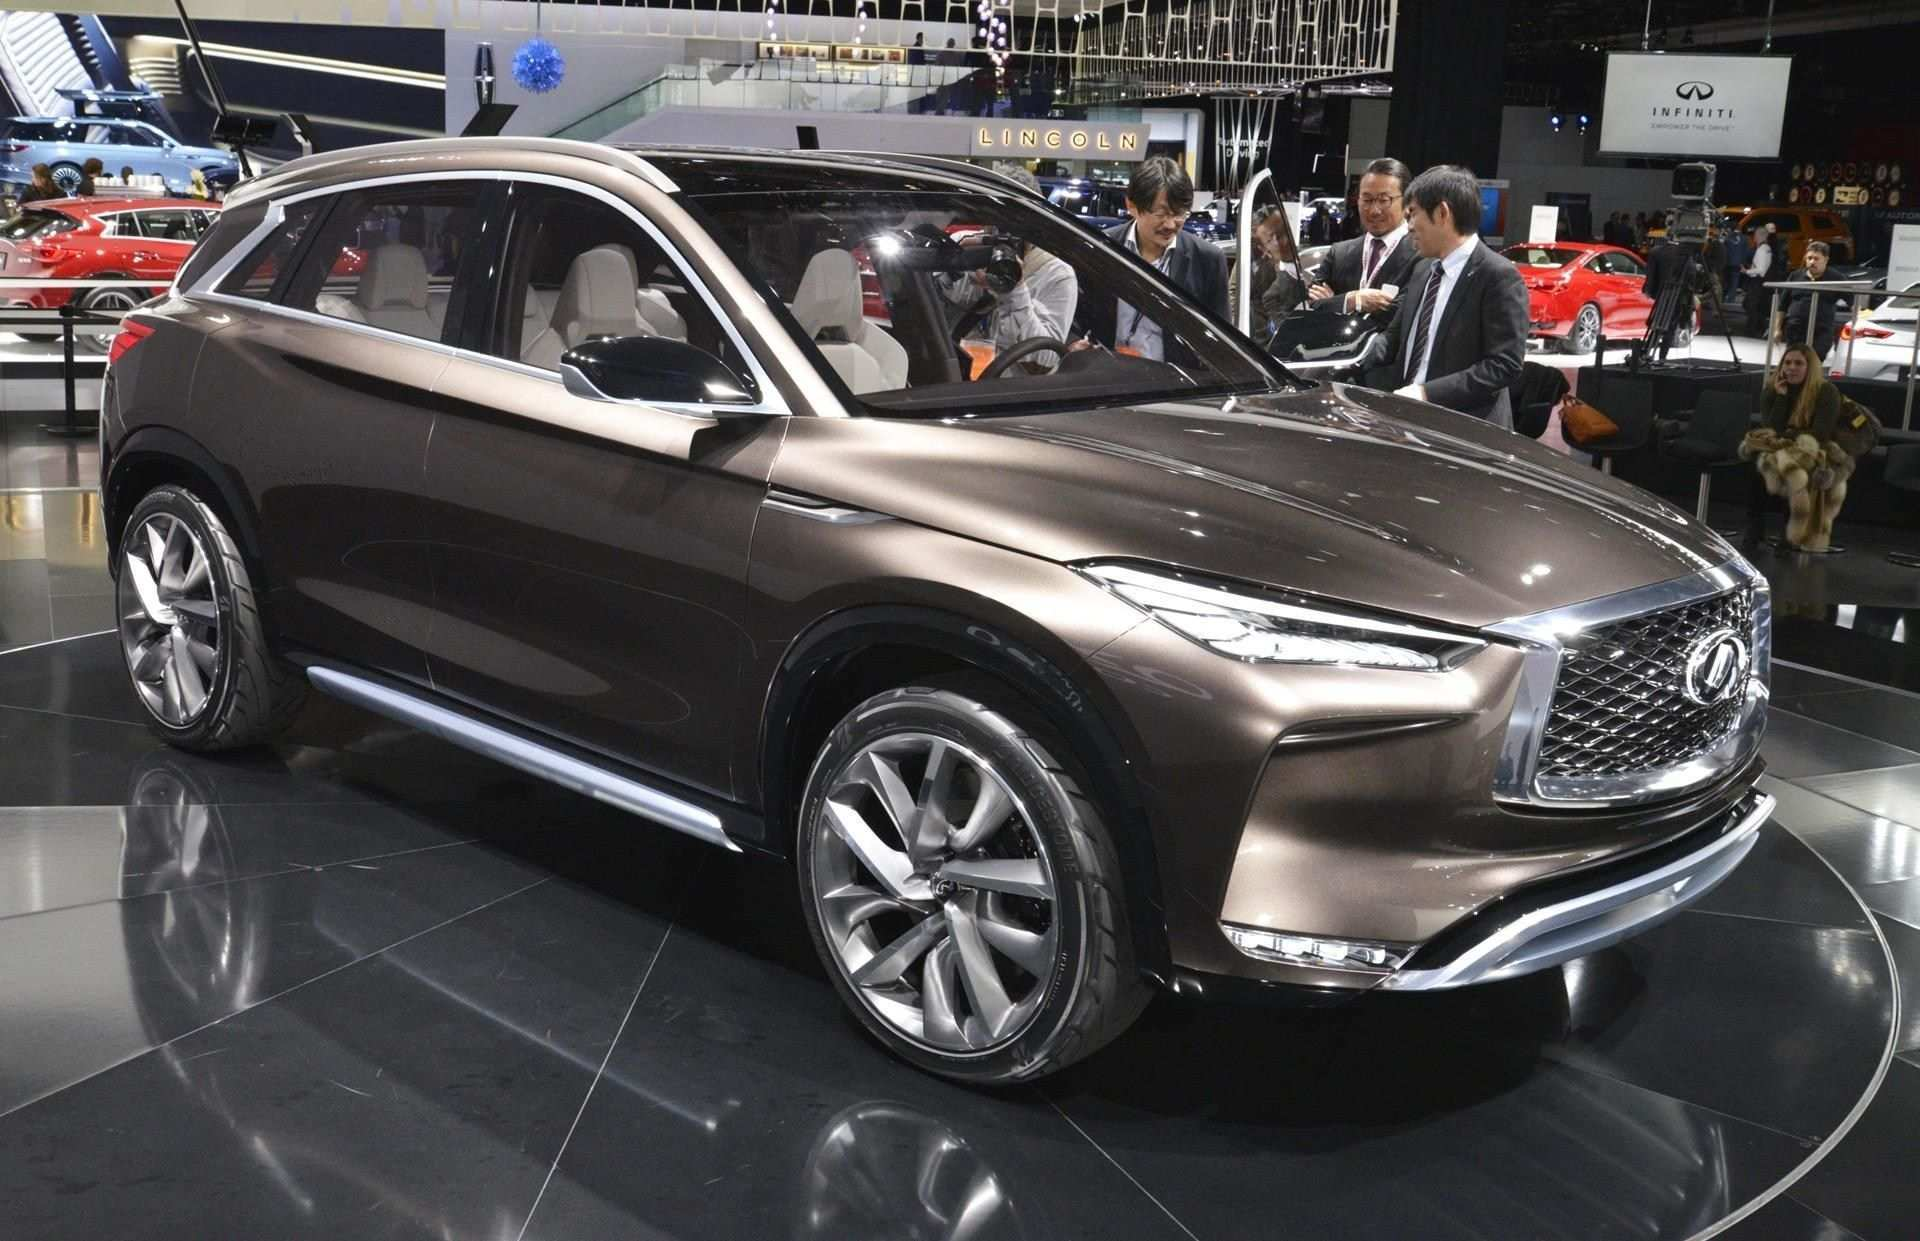 90 Concept of New 2019 Infiniti Qx60 Apple Carplay Release Date And Specs Specs and Review with New 2019 Infiniti Qx60 Apple Carplay Release Date And Specs